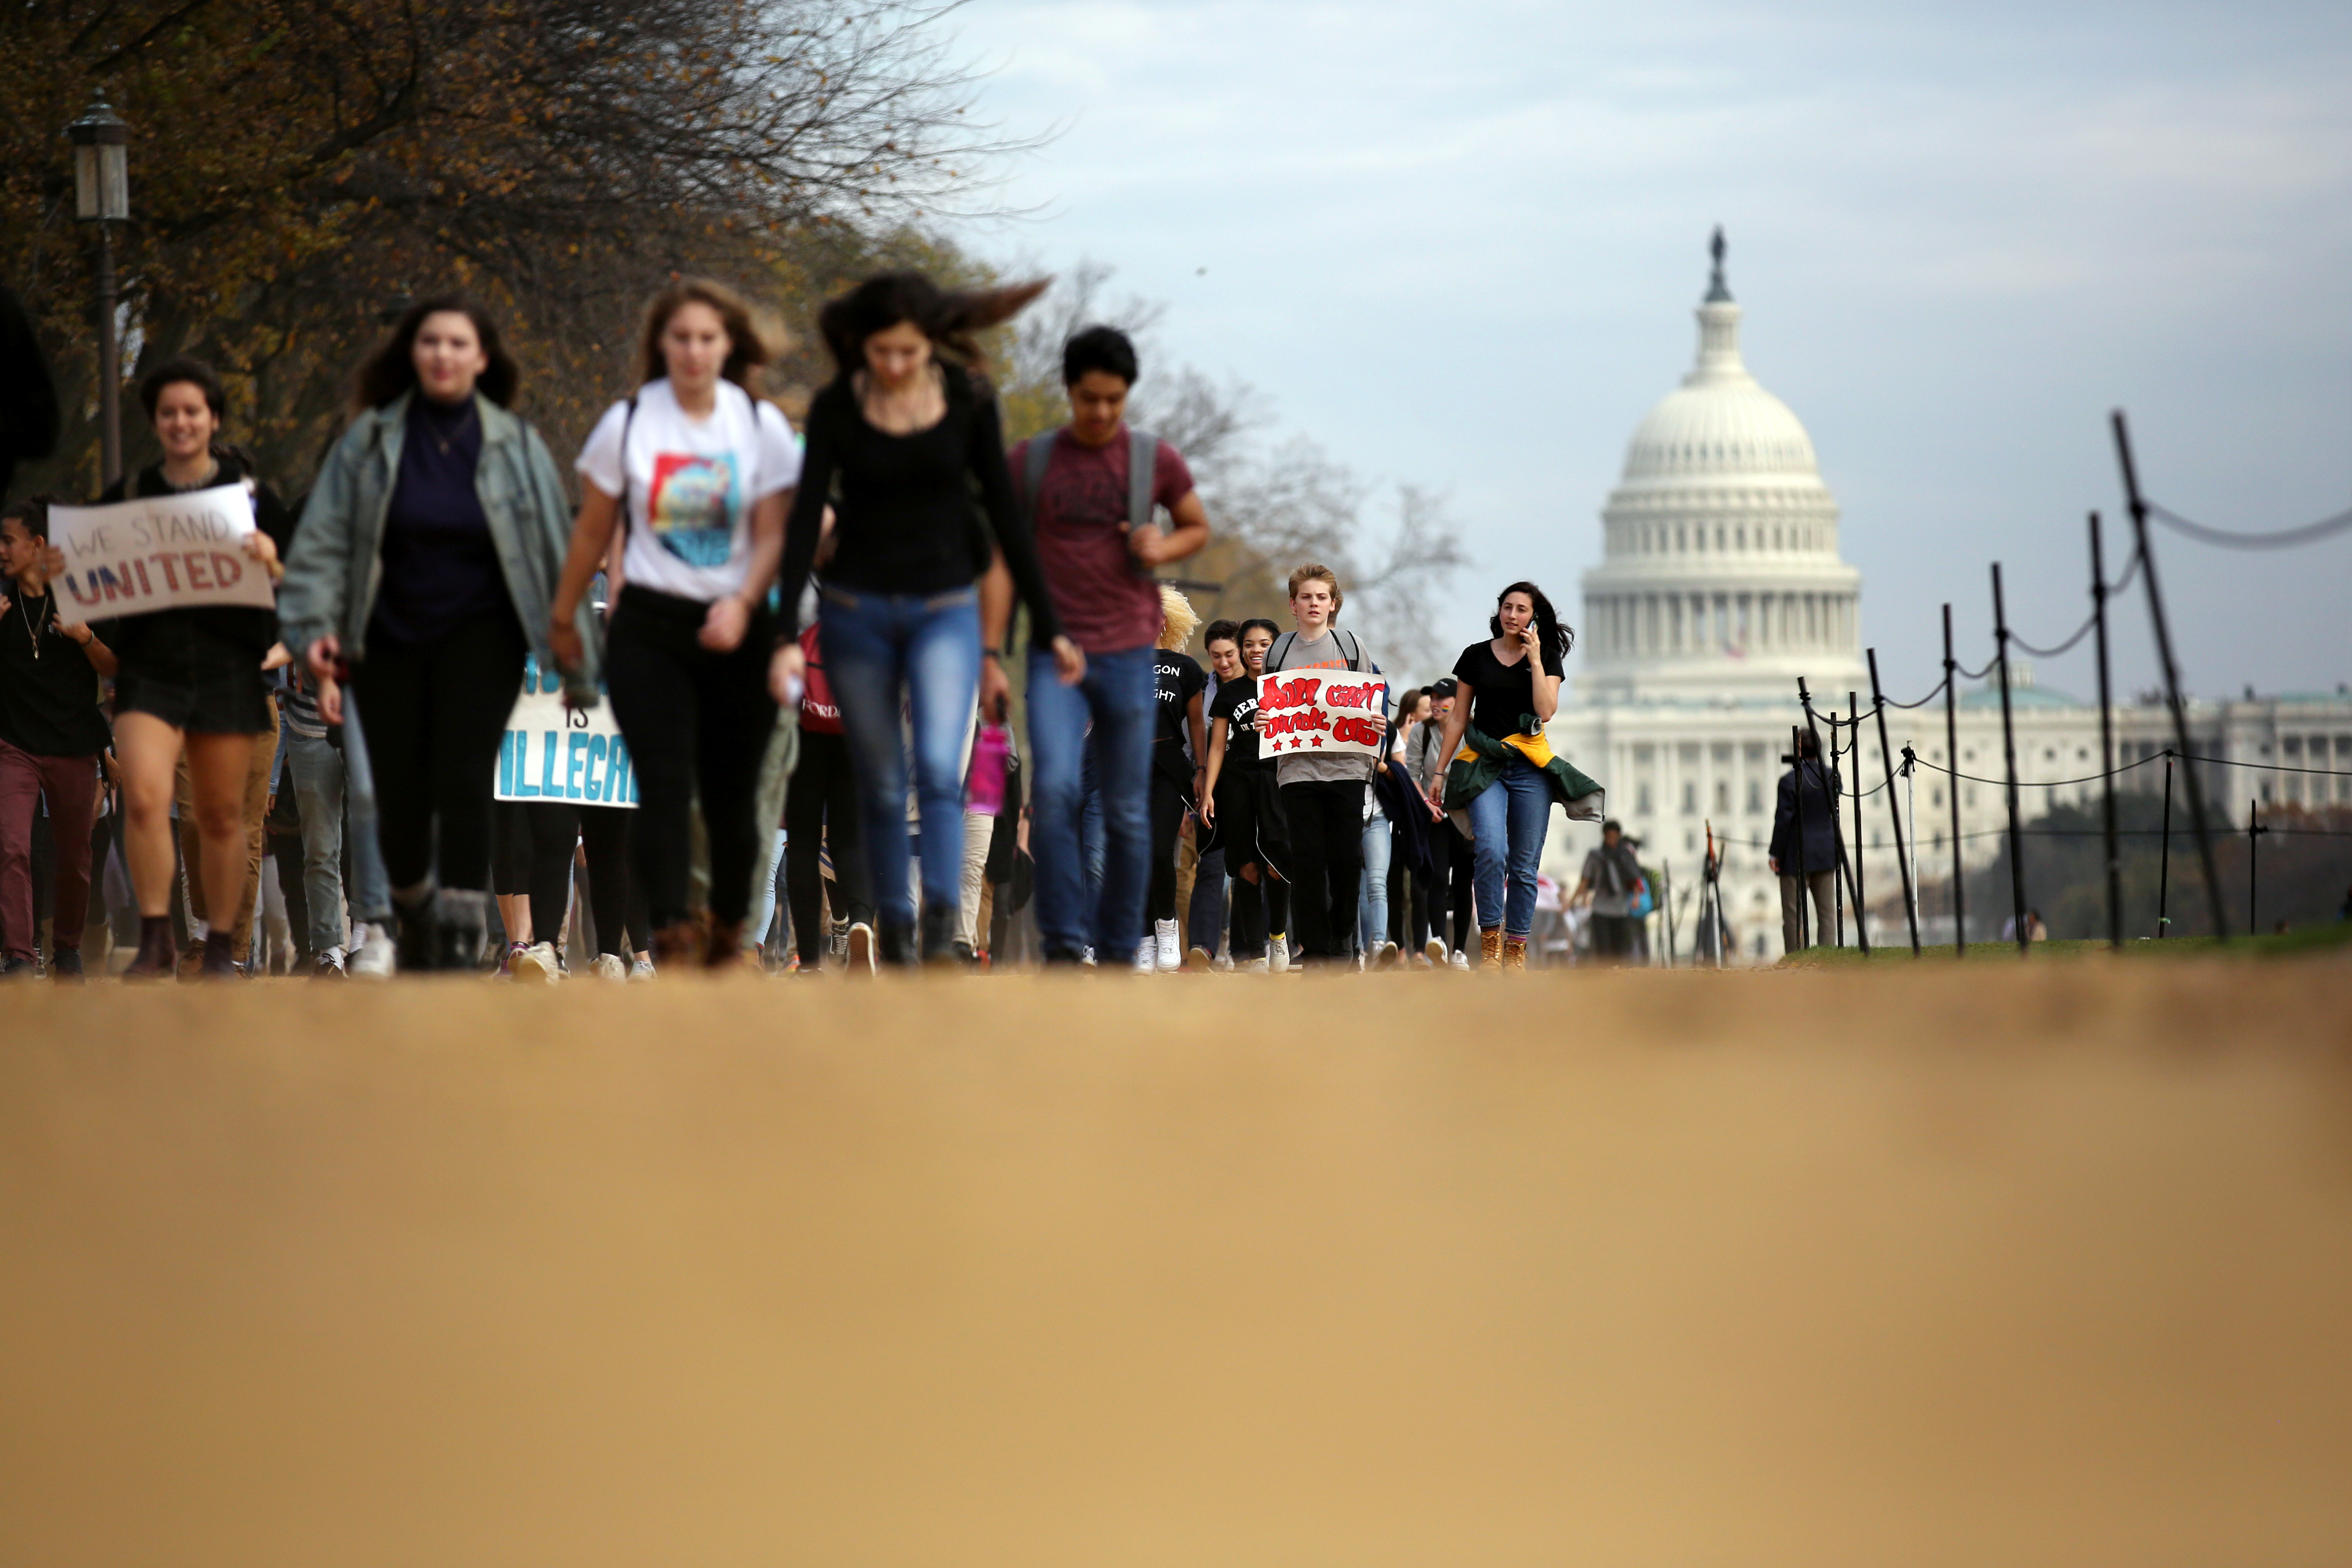 Students march along the National Mall during a protest against President-elect Donald Trump in Washington, U.S., November 15, 2016. REUTERS/Carlos Barria     TPX IMAGES OF THE DAY      - RTX2TU9E